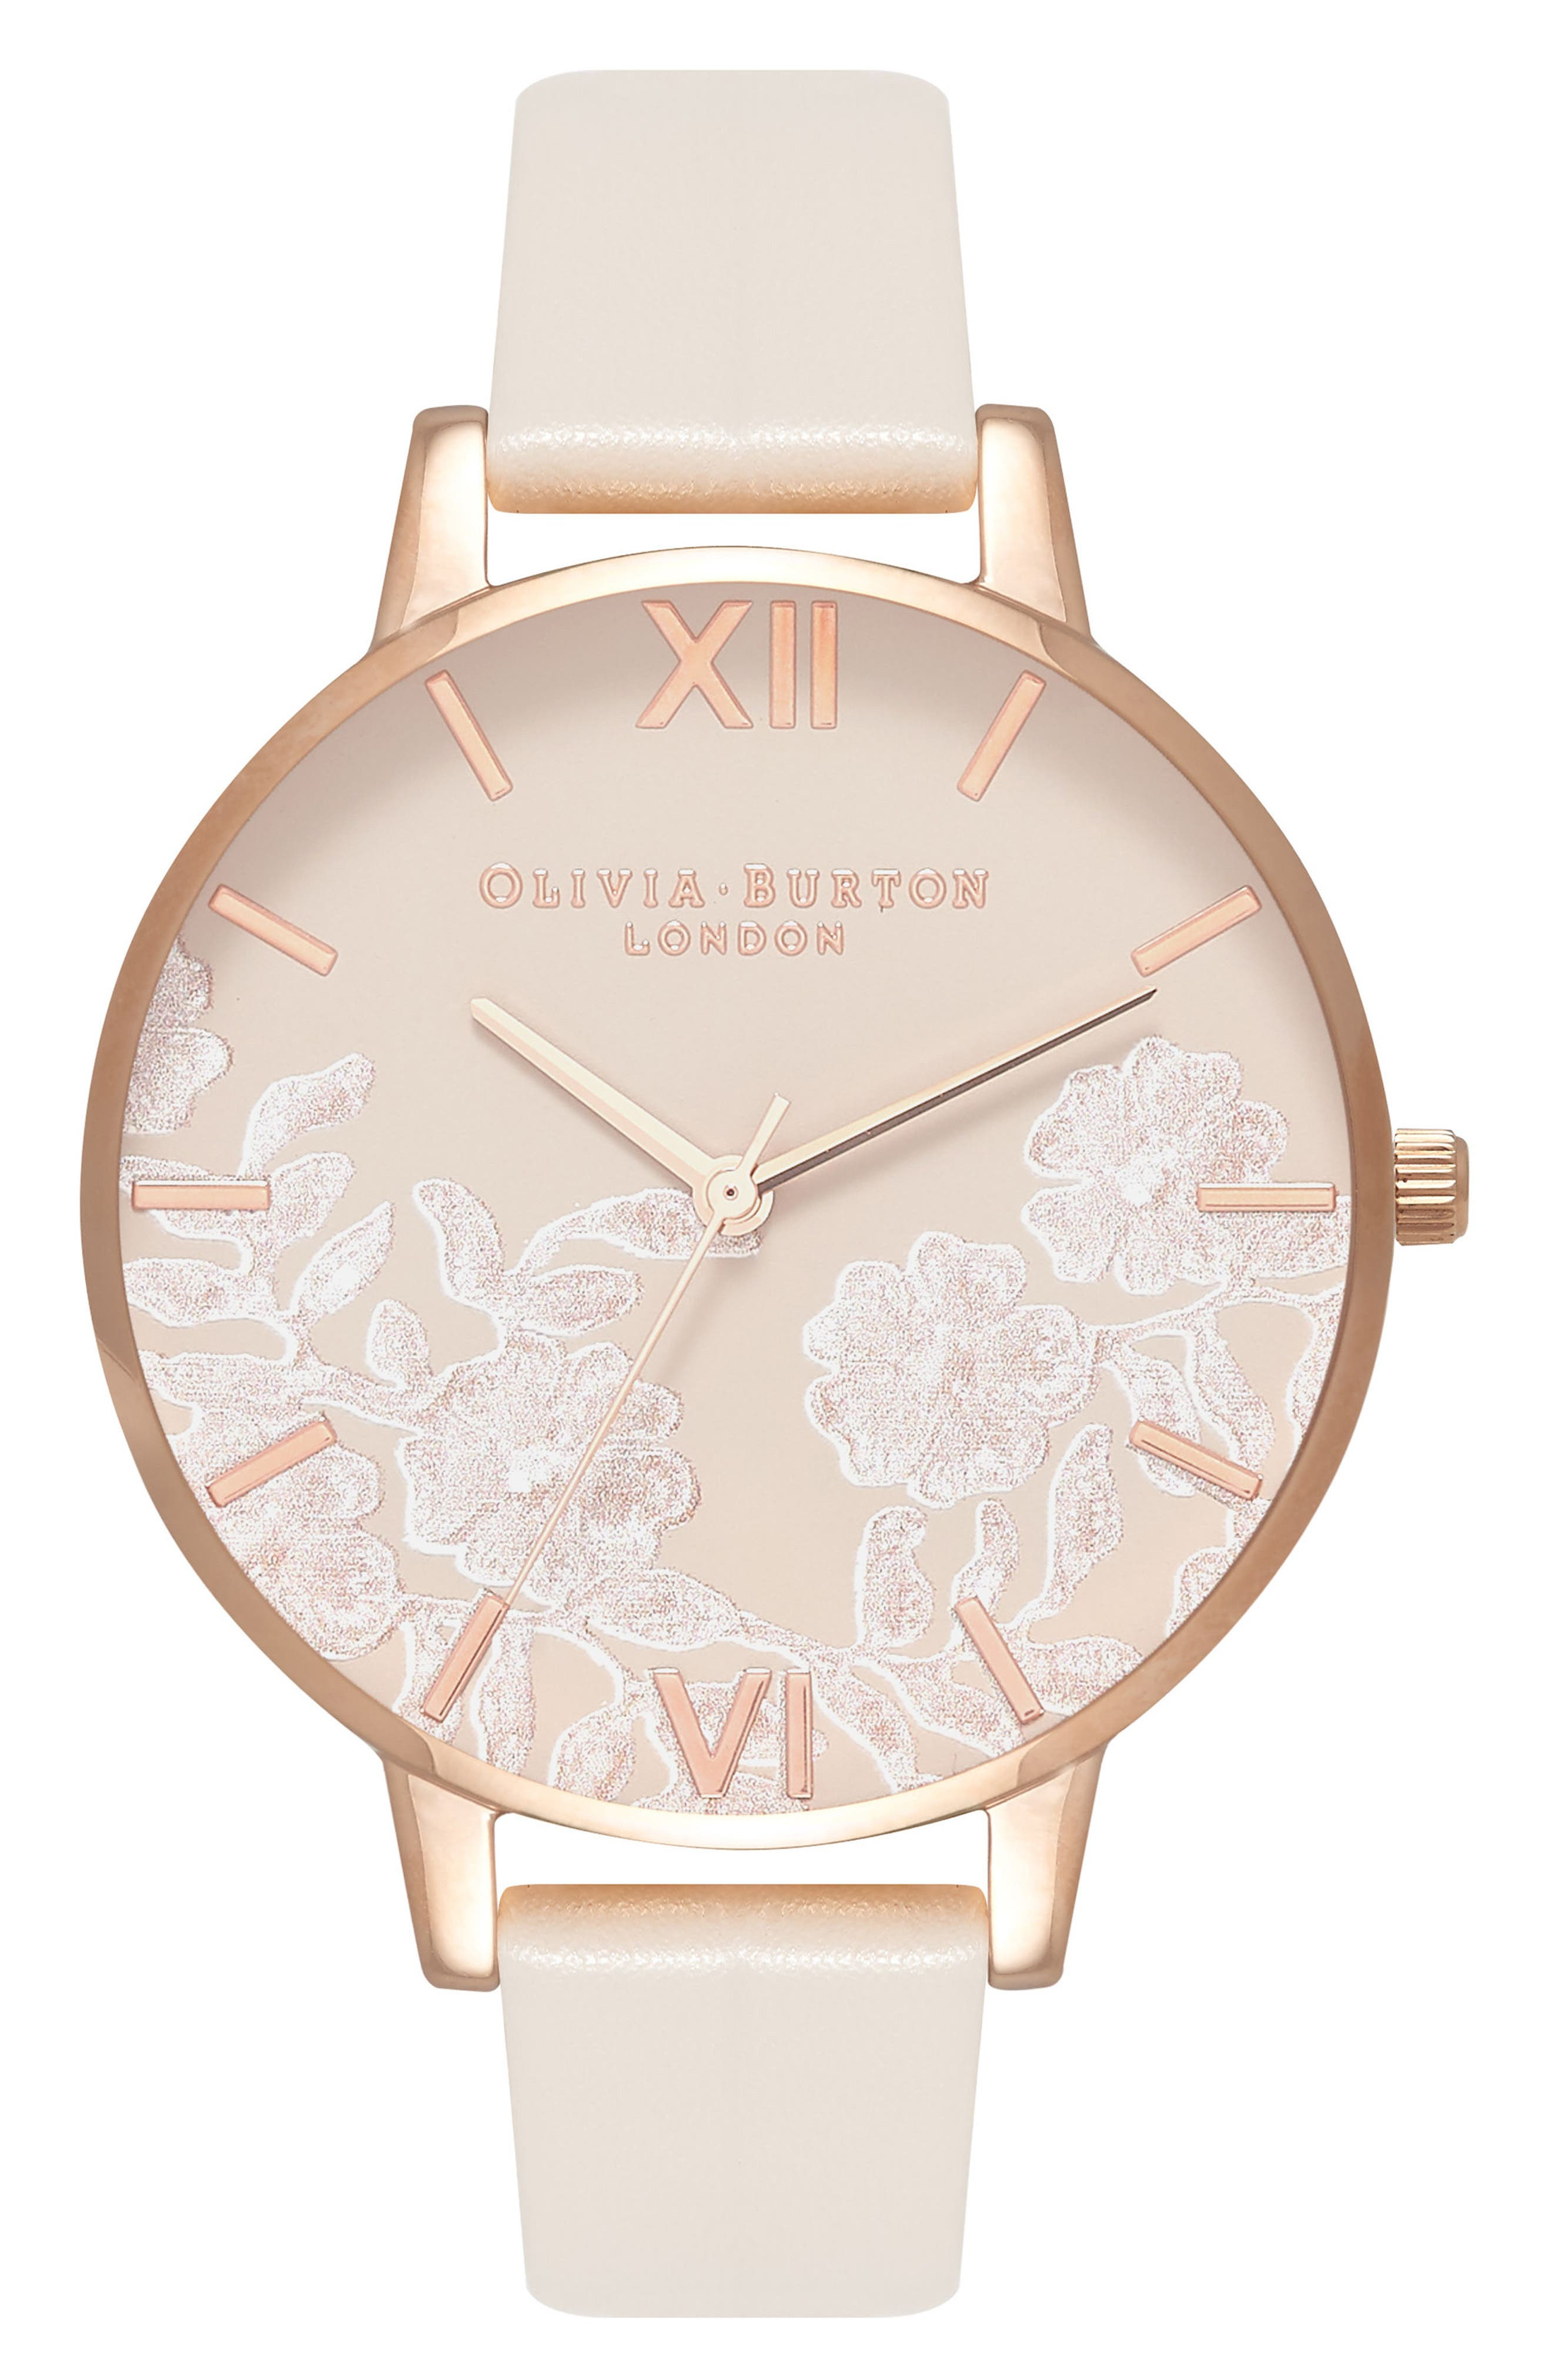 Lace Detail Faux Leather Strap Watch, 38mm,                         Main,                         color, NUDE/ GREY FLORAL/ ROSE GOLD